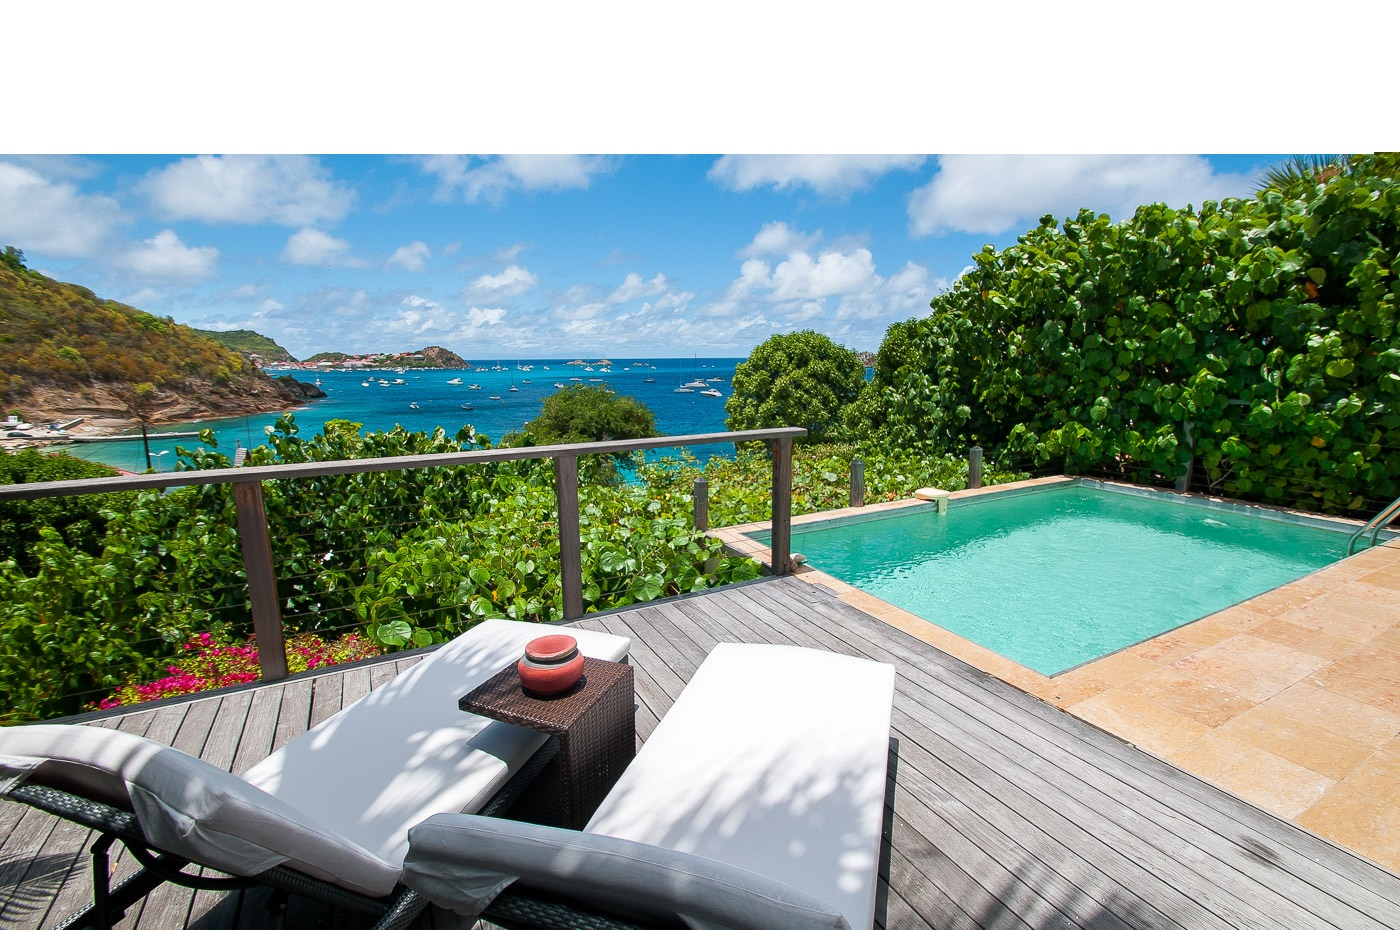 Location st barth l my bungalow avec piscine priv e et for Piscine privee com